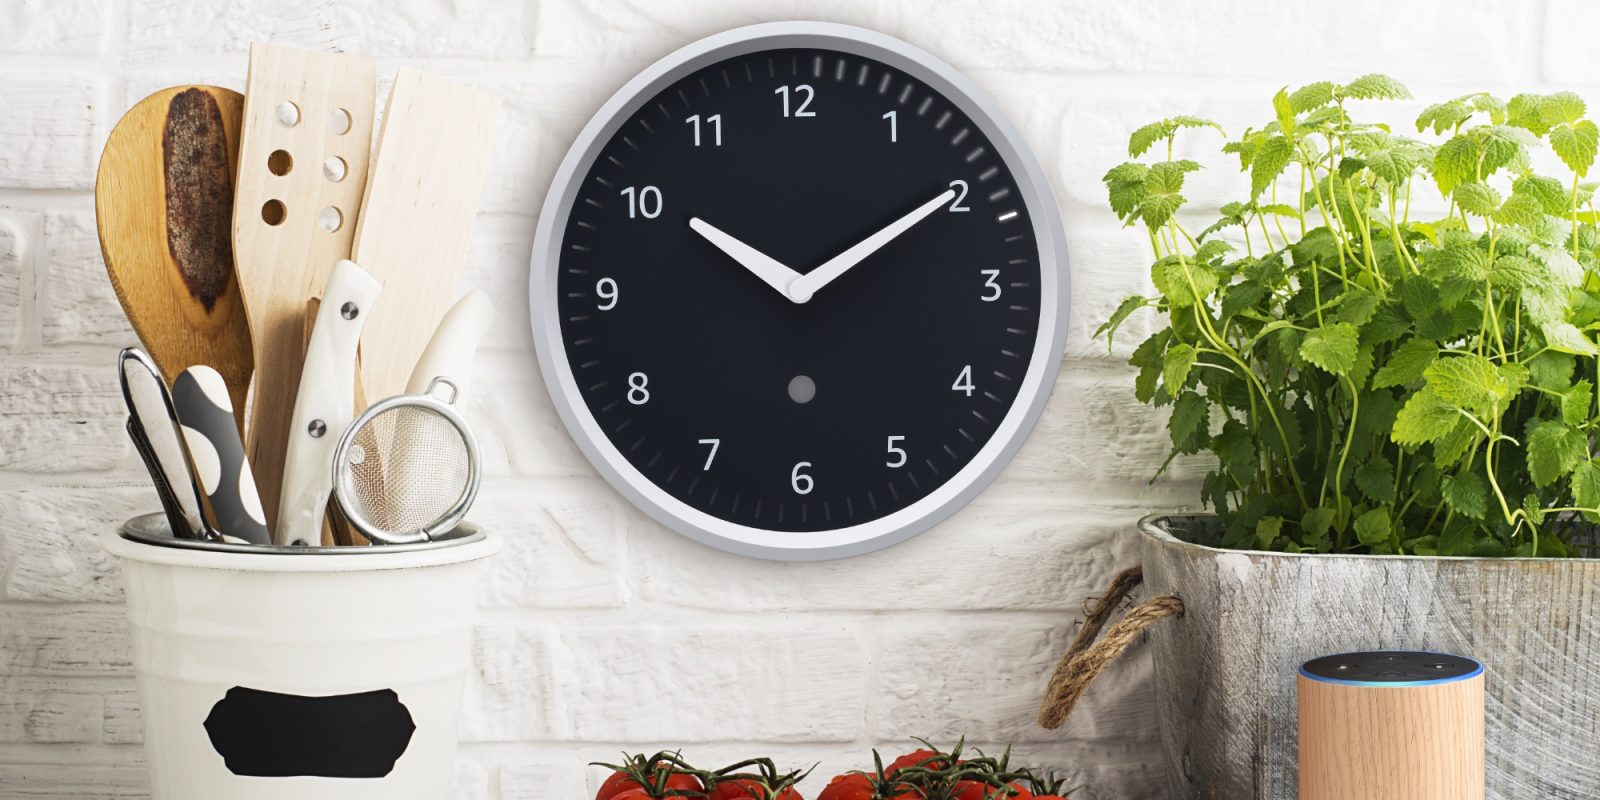 Echo Wall Clock visualizes timers and expands your Alexa smart home for $25